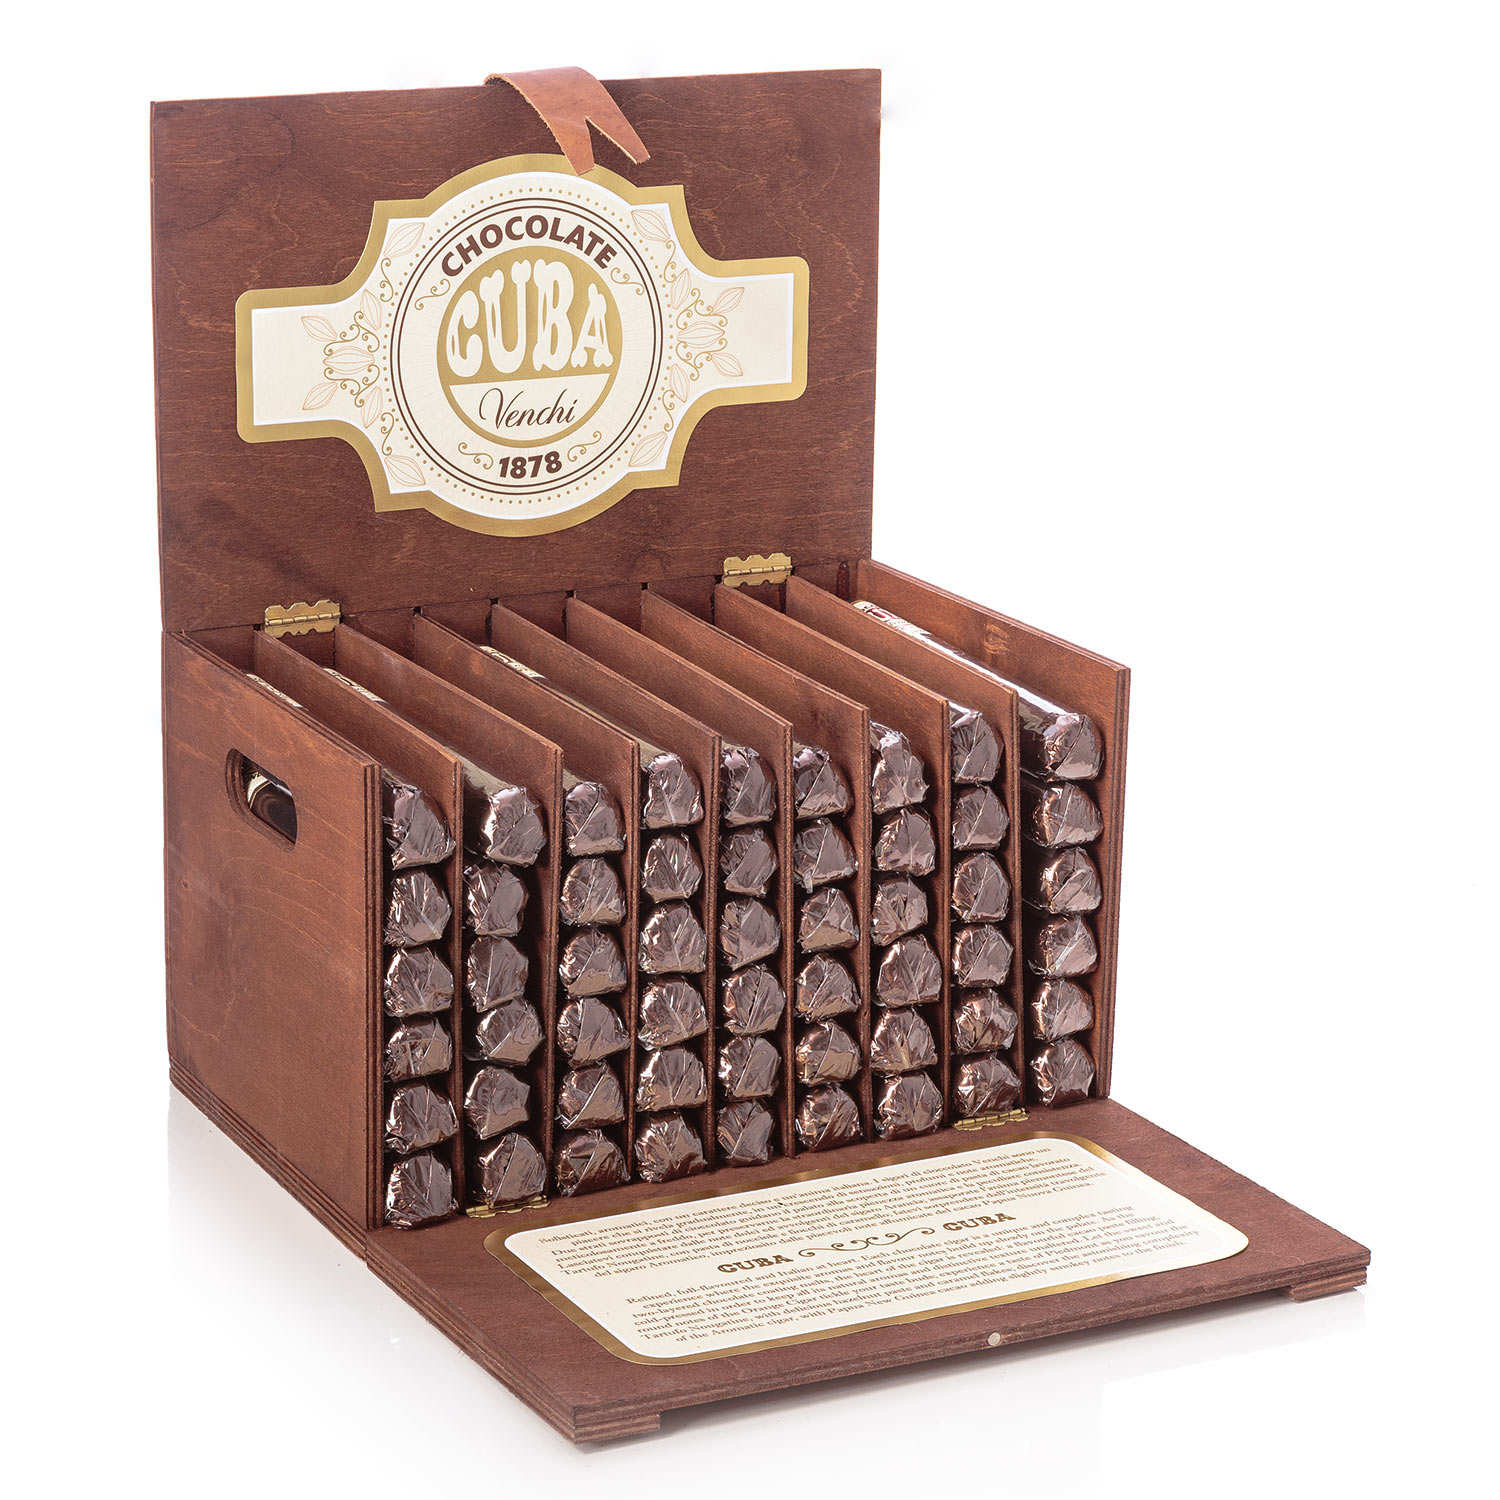 Wooden box with 54 chocolate cigars